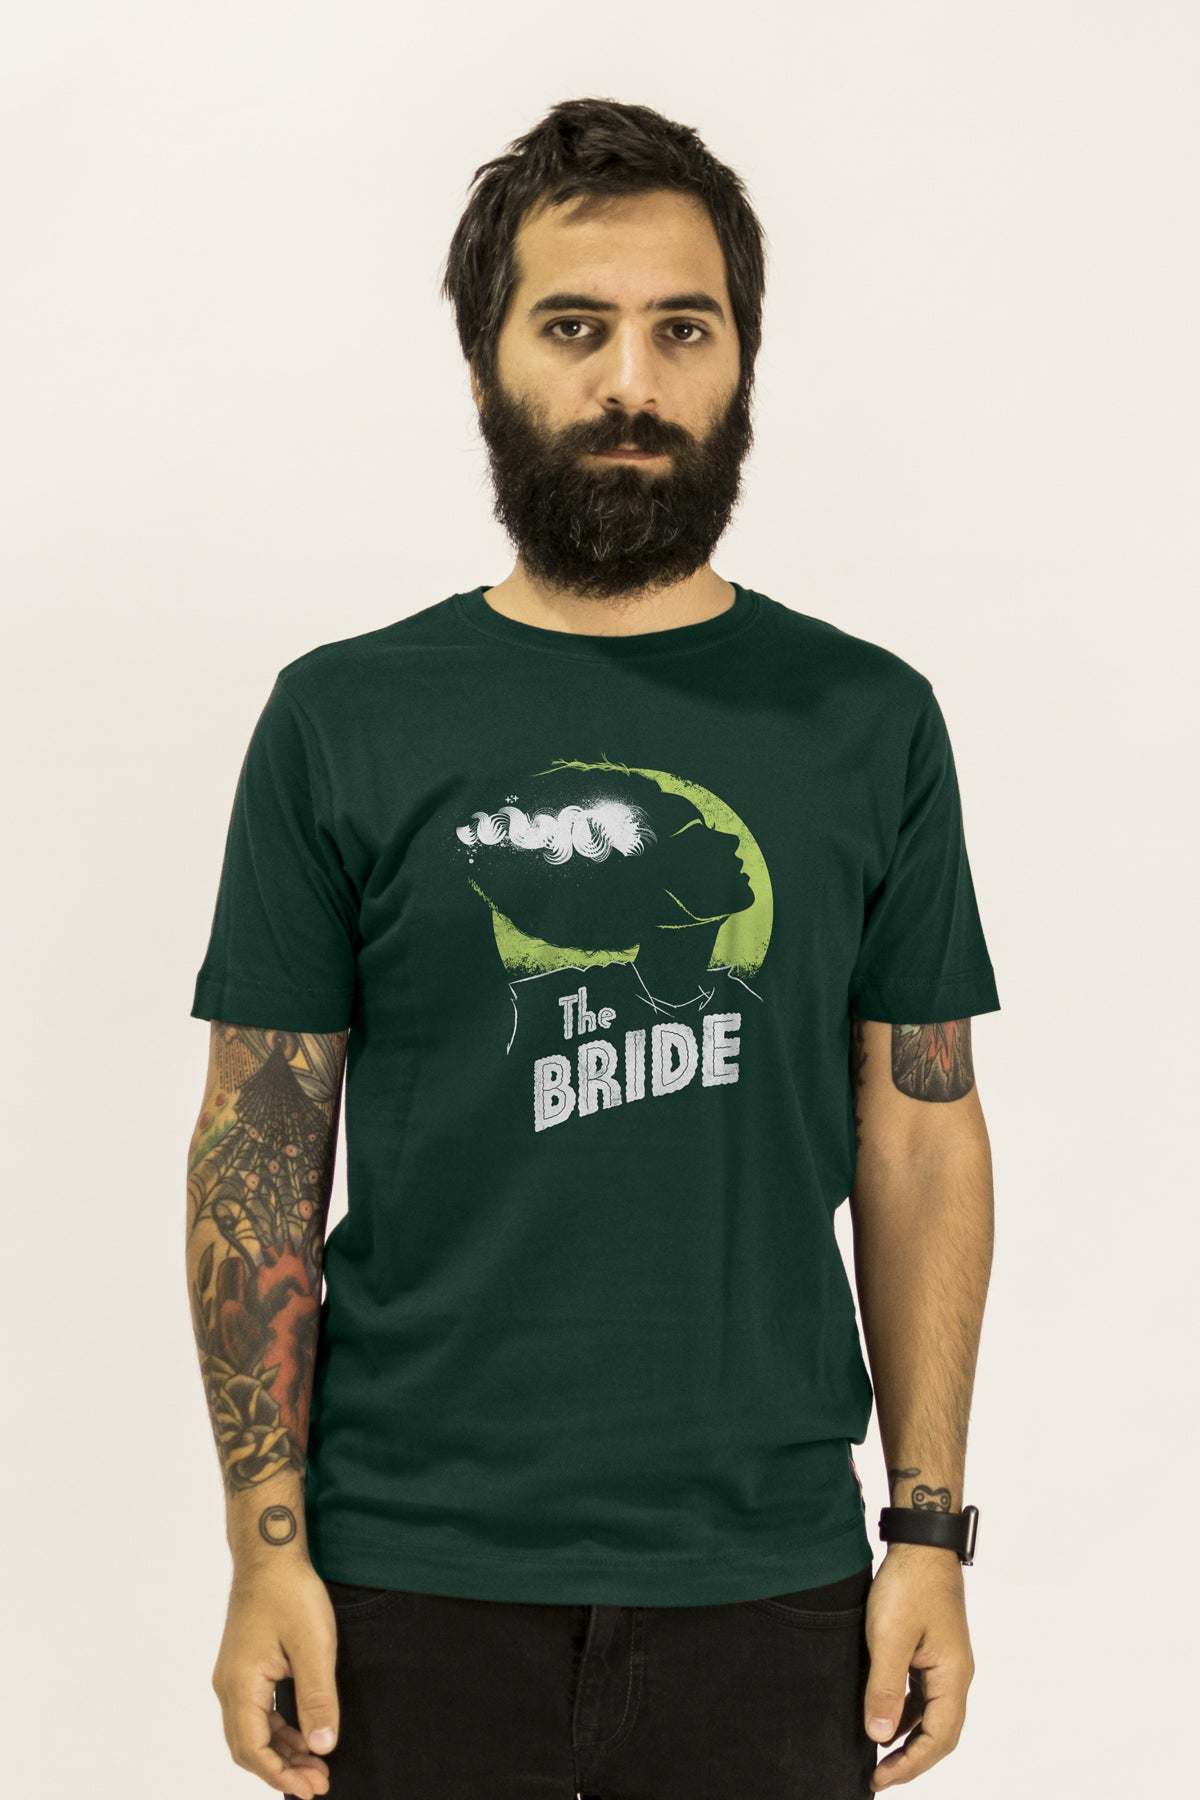 The Bride of Frankenstein design t-shirt by Suxinsu